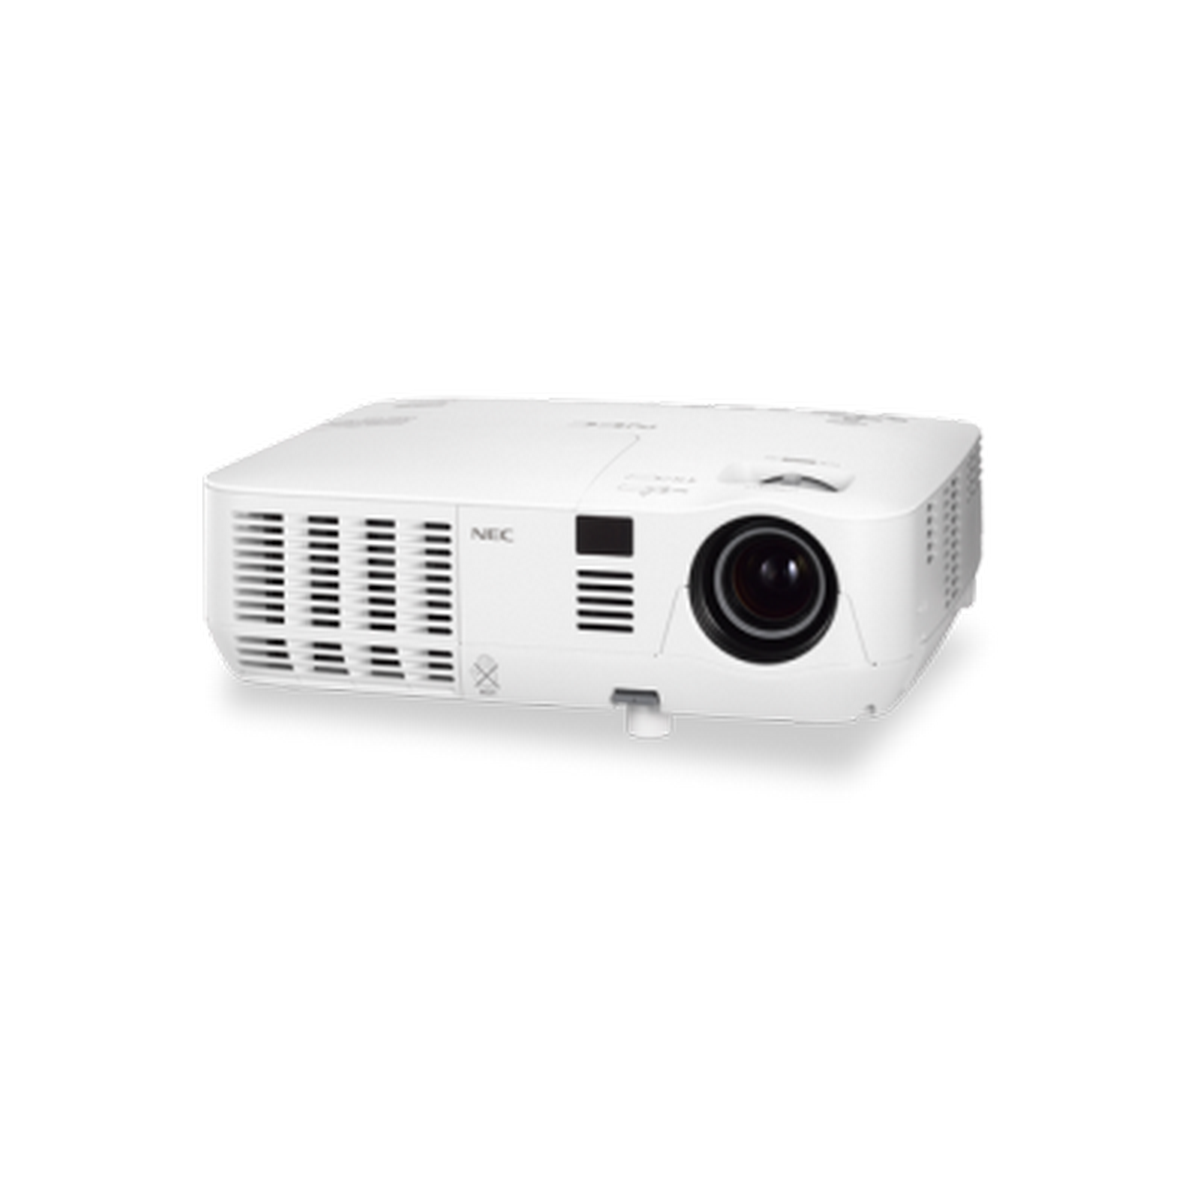 NEC Display NP-V311W Projector